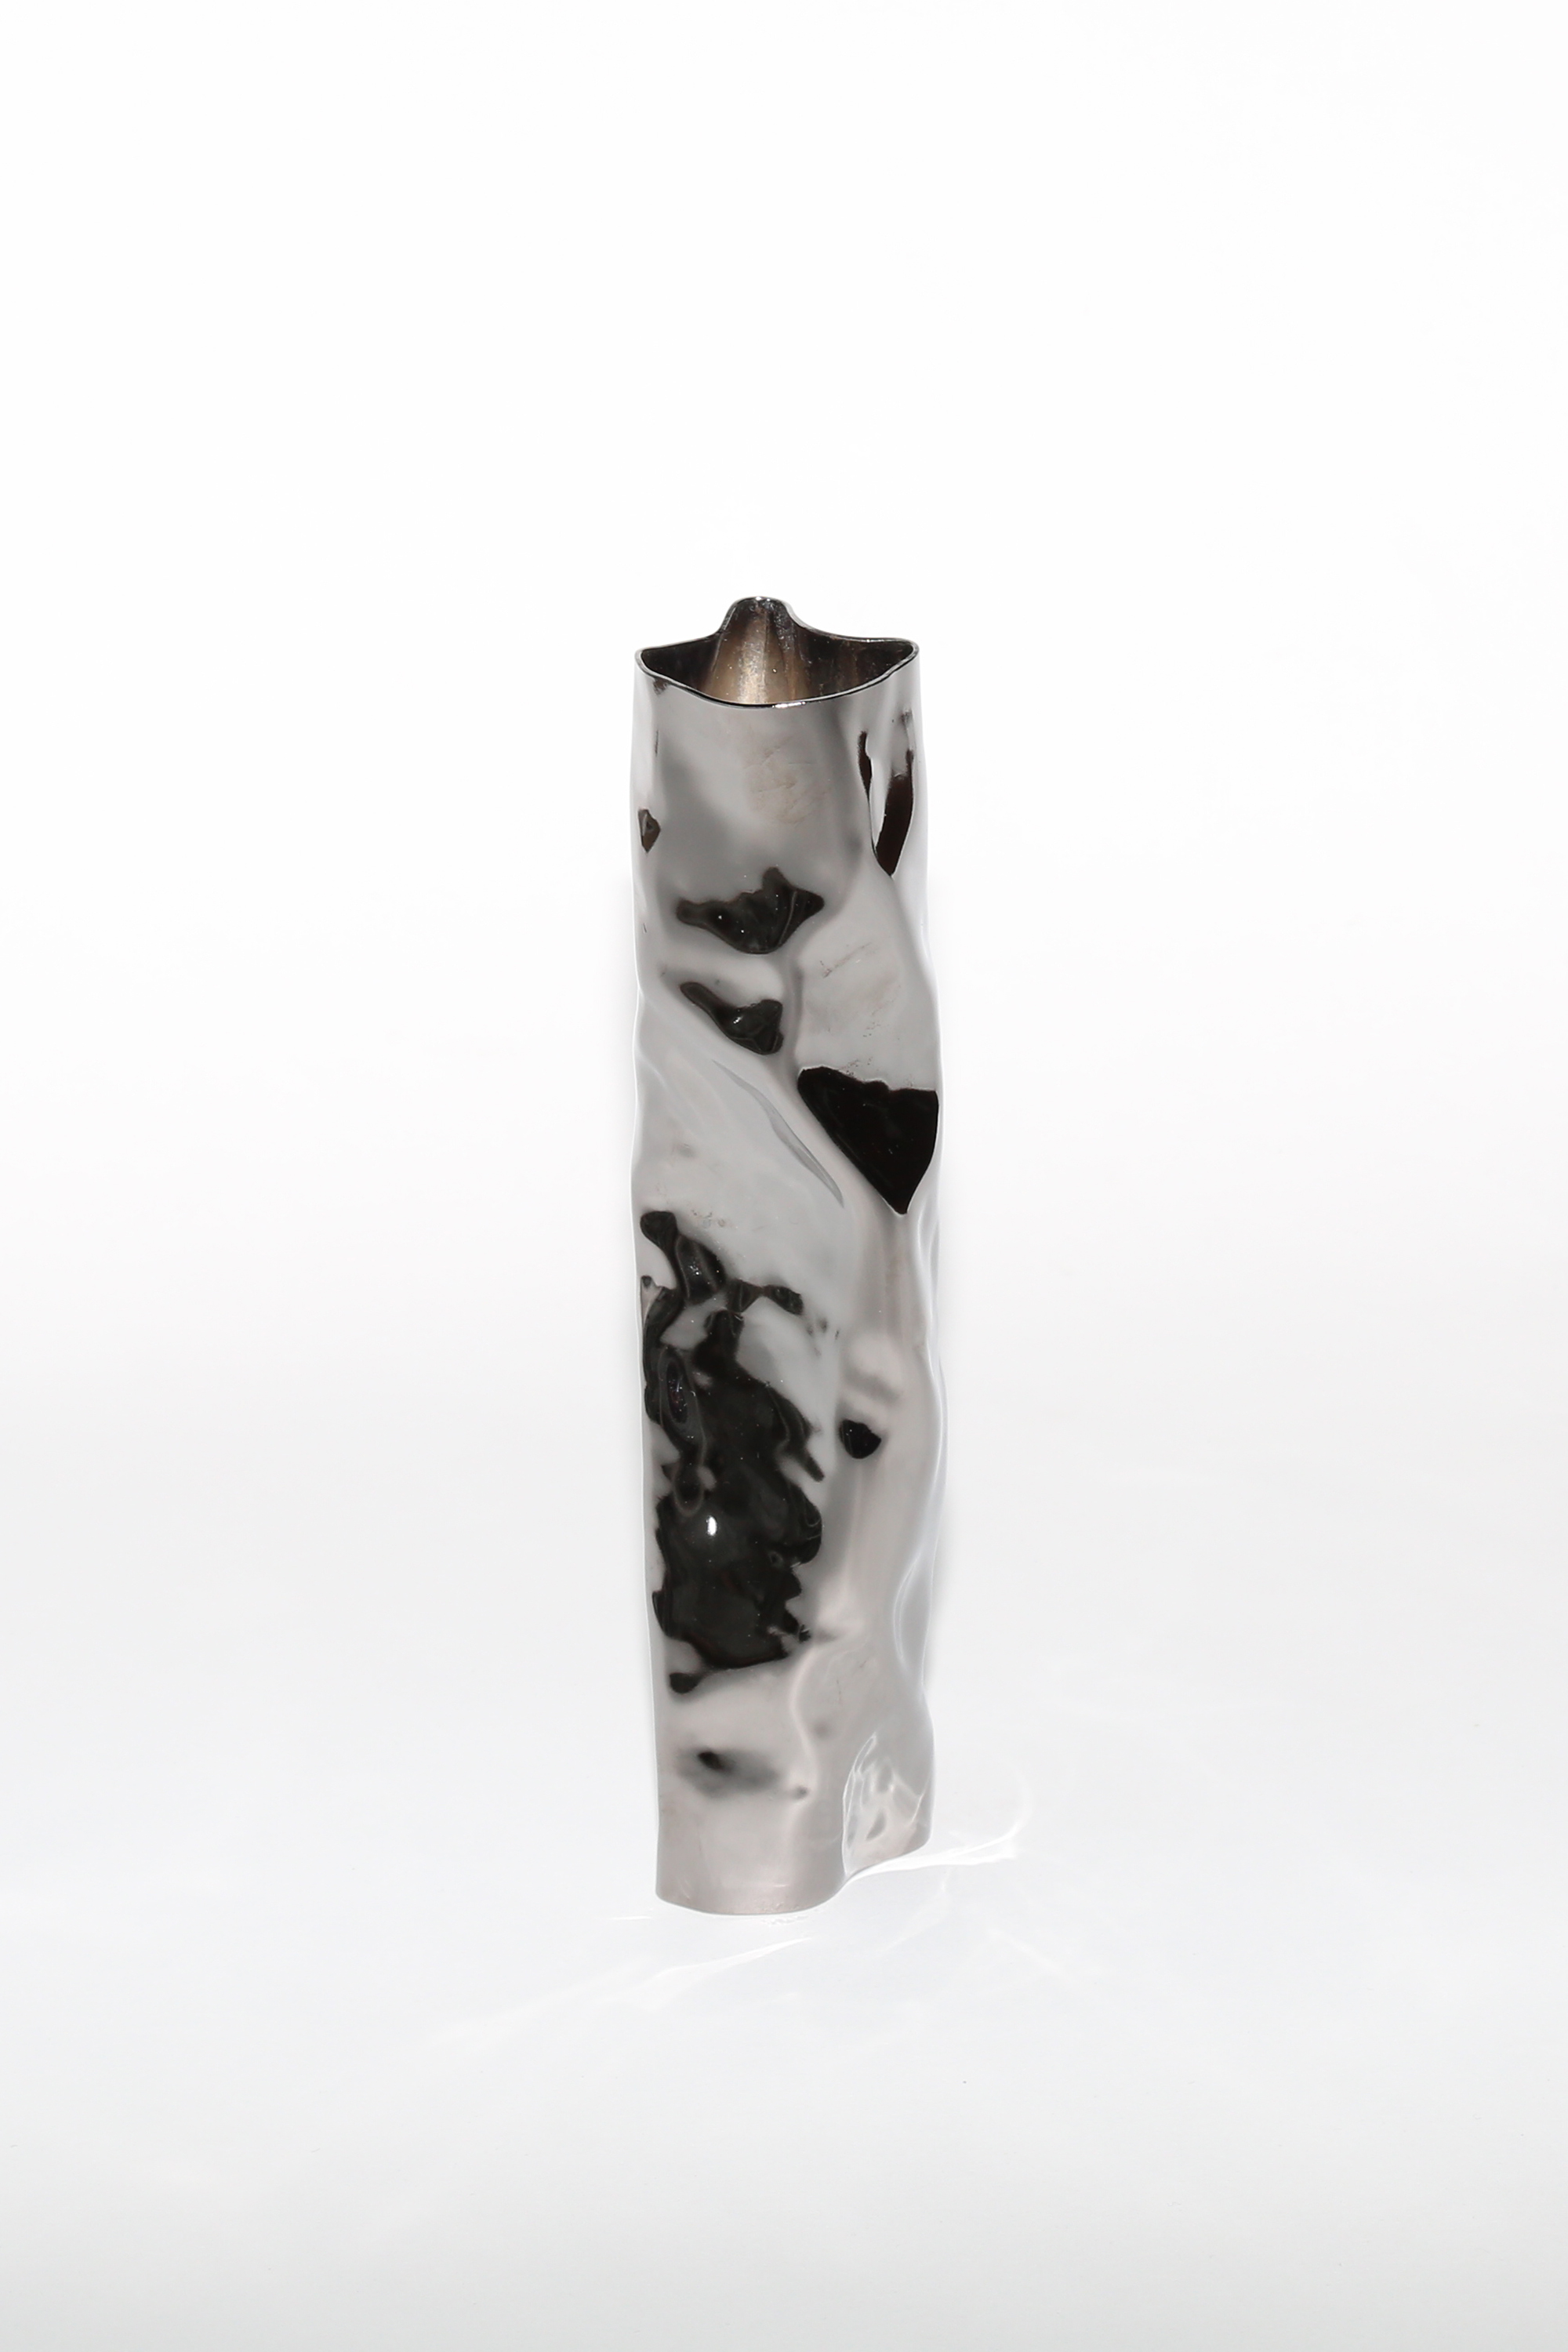 Table Top Vase  - Soft Baroque Black nickel plated brass20177cm x 7cm x 24cm0.5kg  Price on request